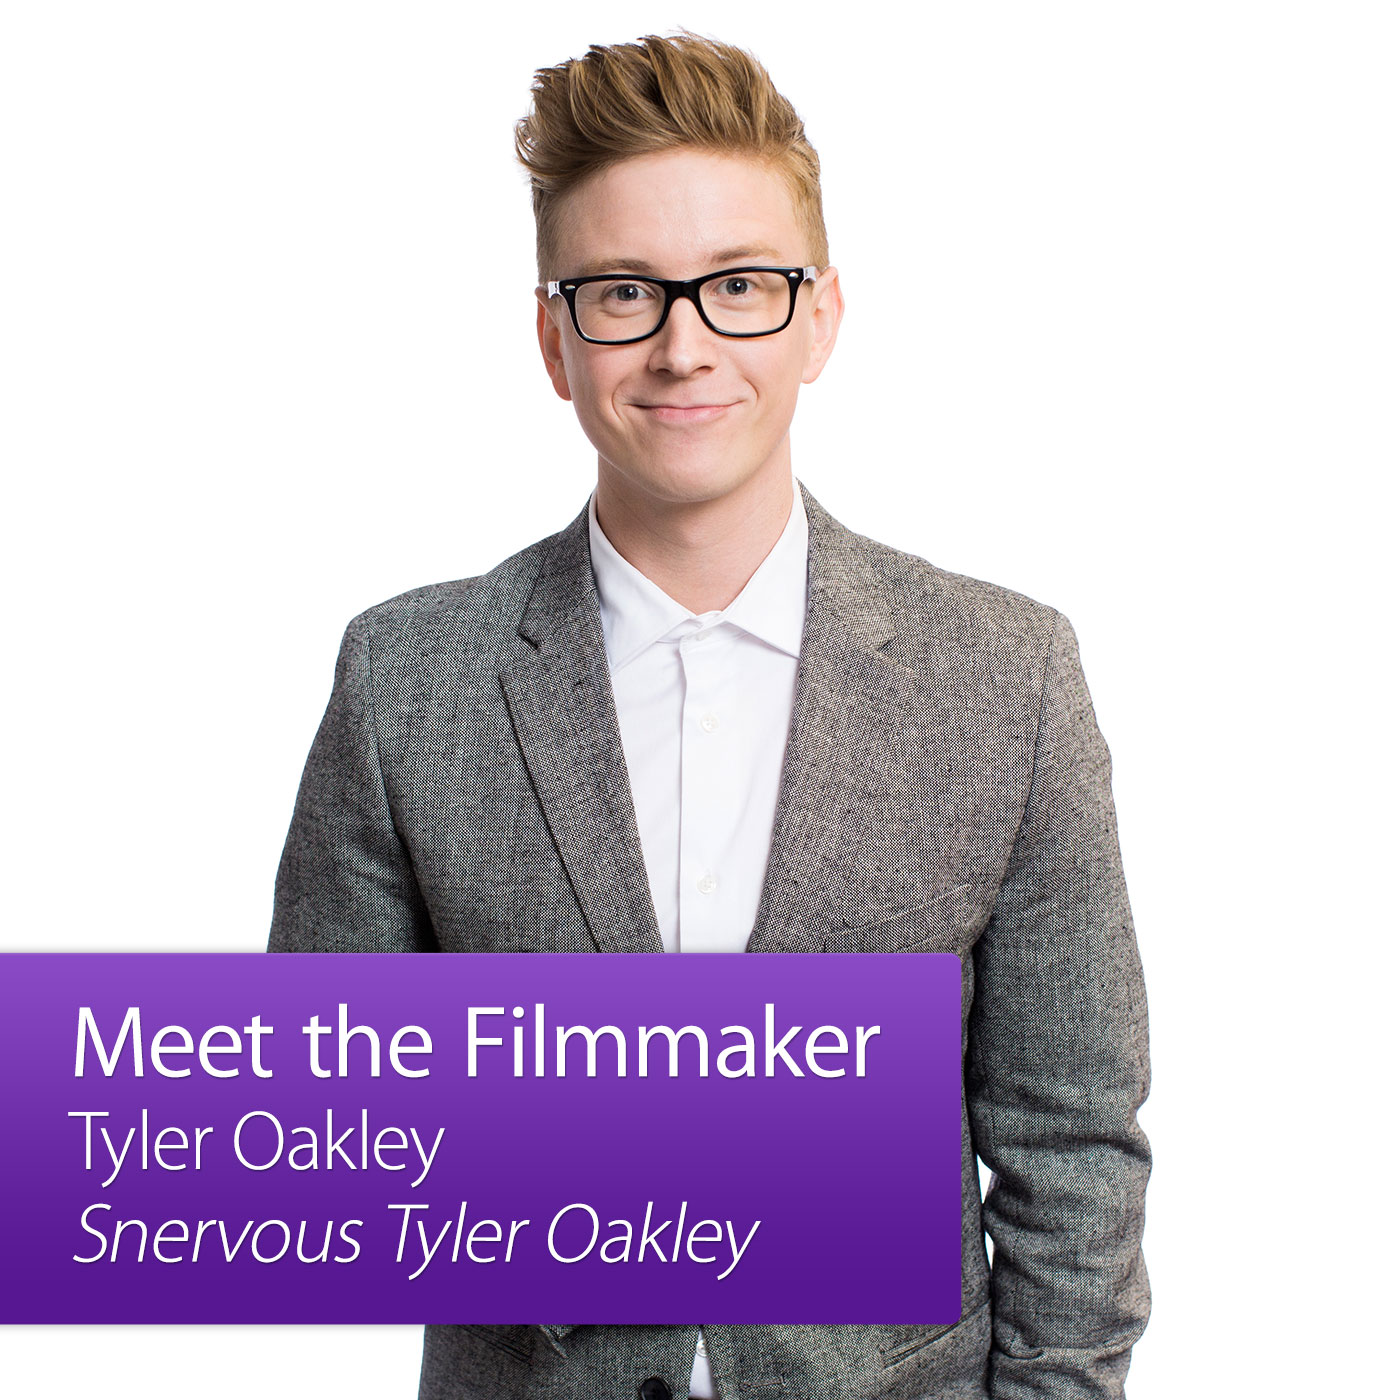 Snervous Tyler Oakley: Meet the Filmmaker